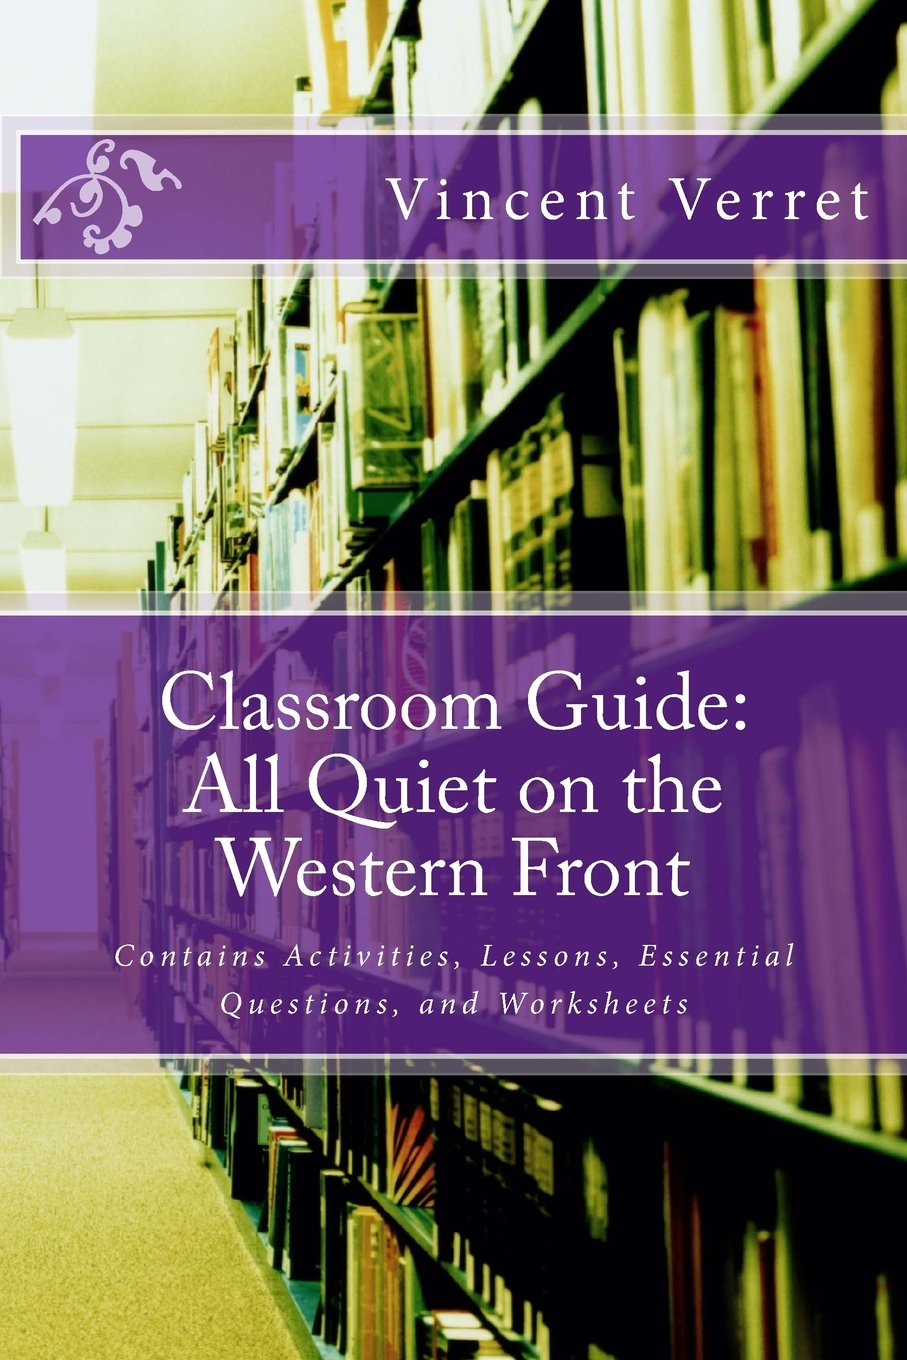 Classroom Guide: All Quiet on the Western Front: Contains Activities, Lessons, Essential Questions, and Worksheets (Instructional Resources for Teachers) pdf